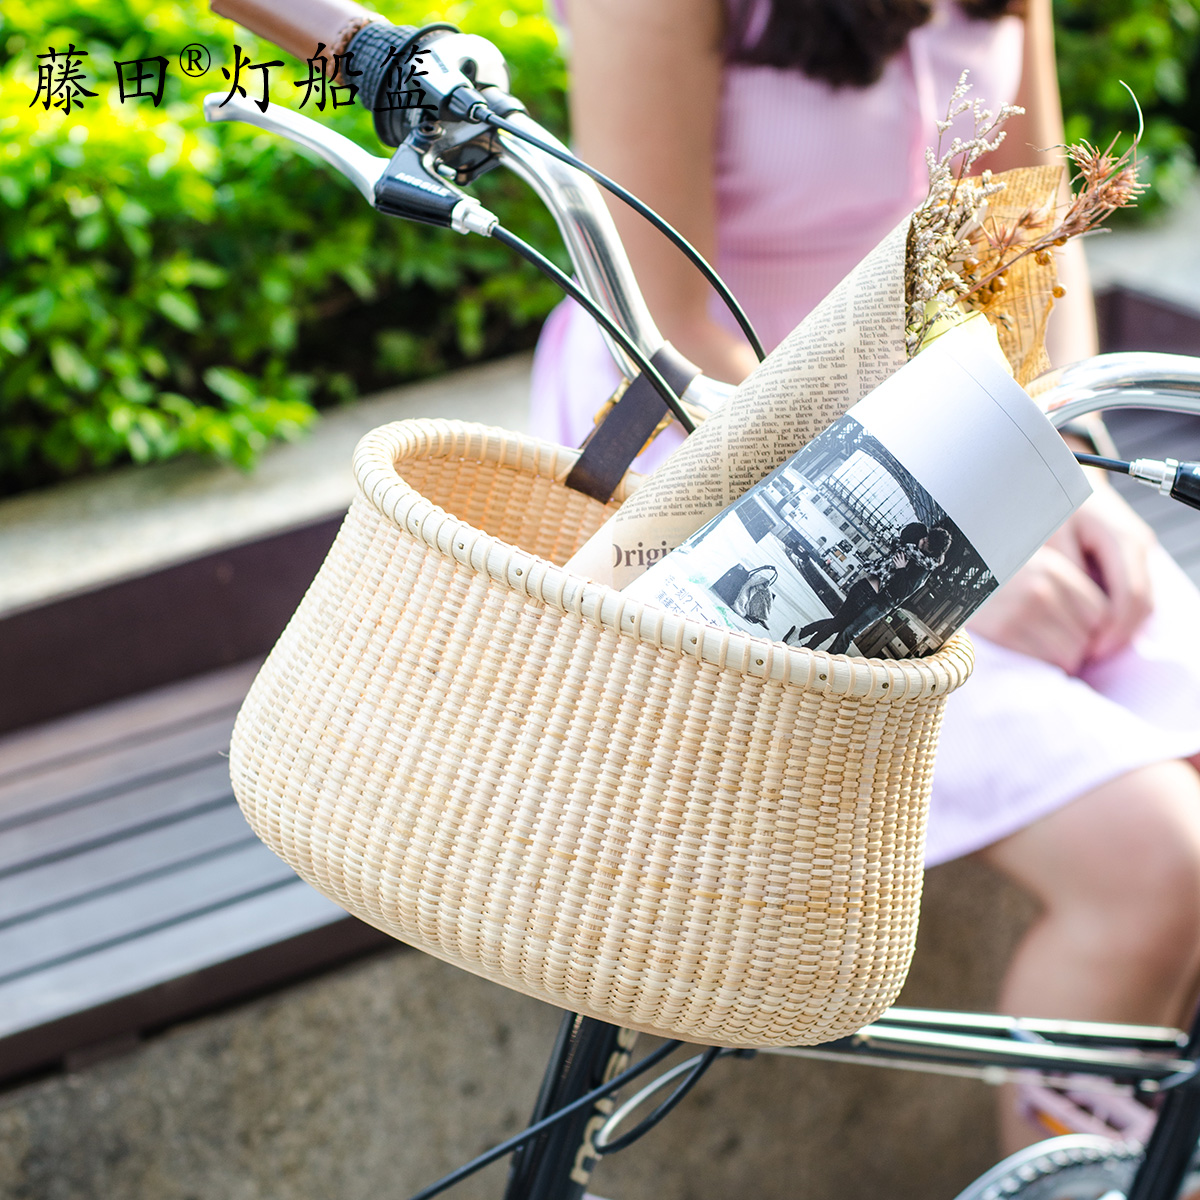 Bicycle basket folding bicycle basket before the basket rattan basket basket basket shopping basket bicycle accessories